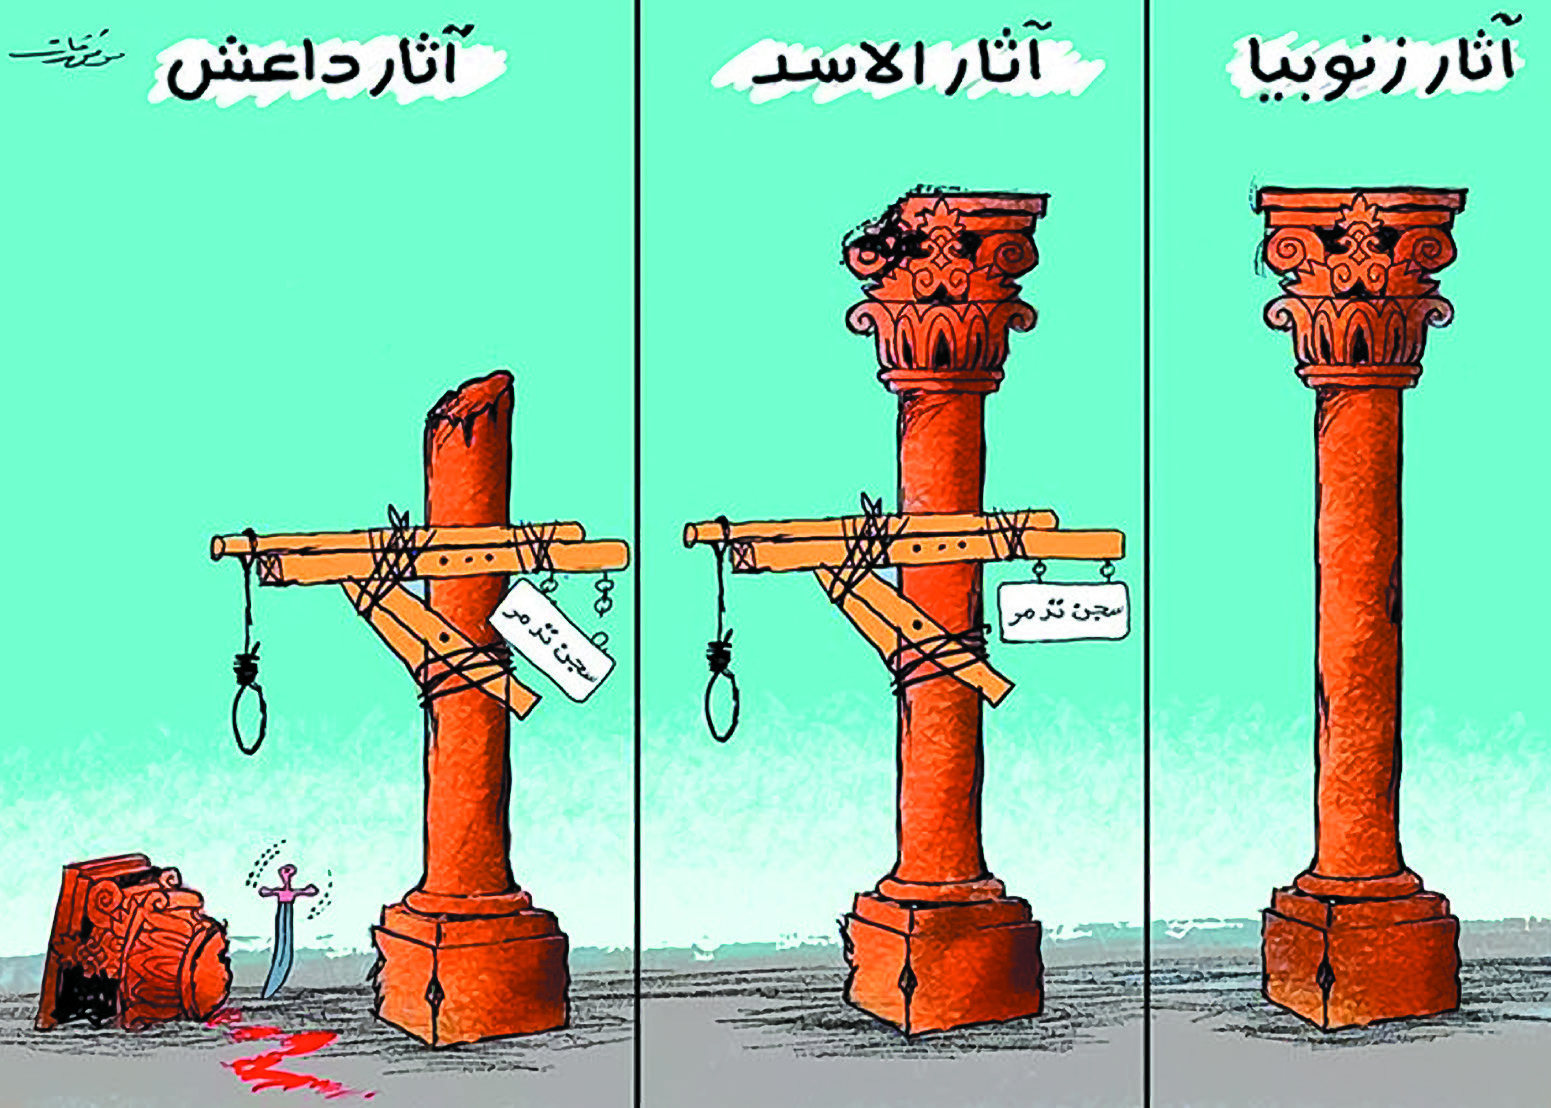 Mwafaq Katt's cartoon Palmyra from 2015. The first marches in Palmyra took place in April 2011 at the funeral of a soldier, executed for refusing to fire on a protest